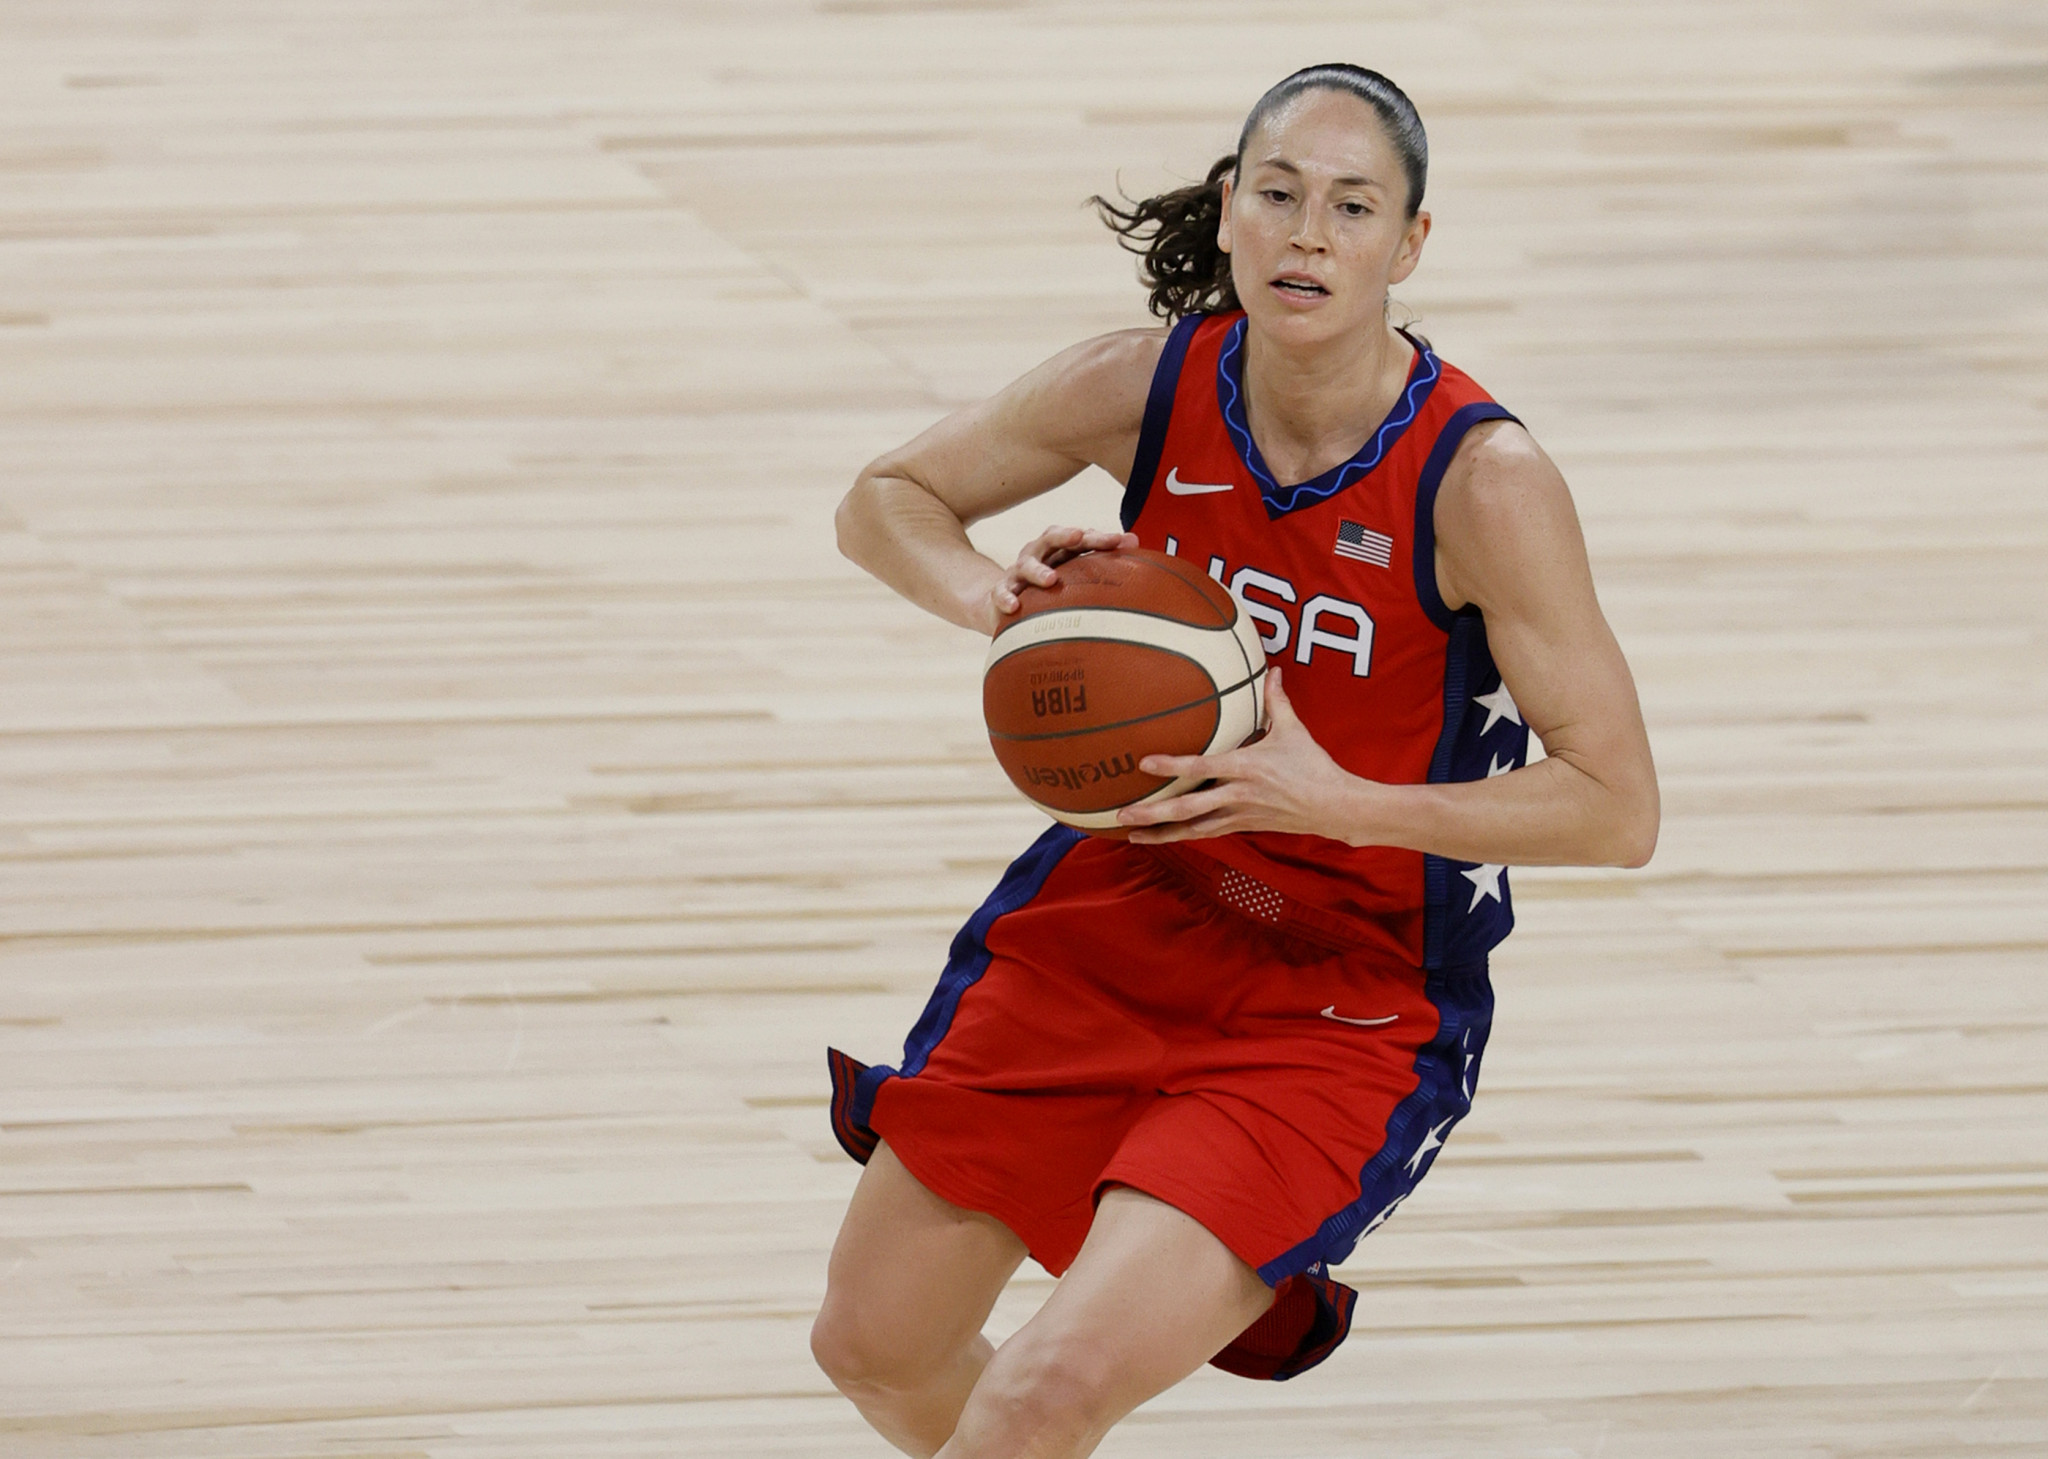 Basketball and baseball players picked to carry United States flag at Tokyo 2020